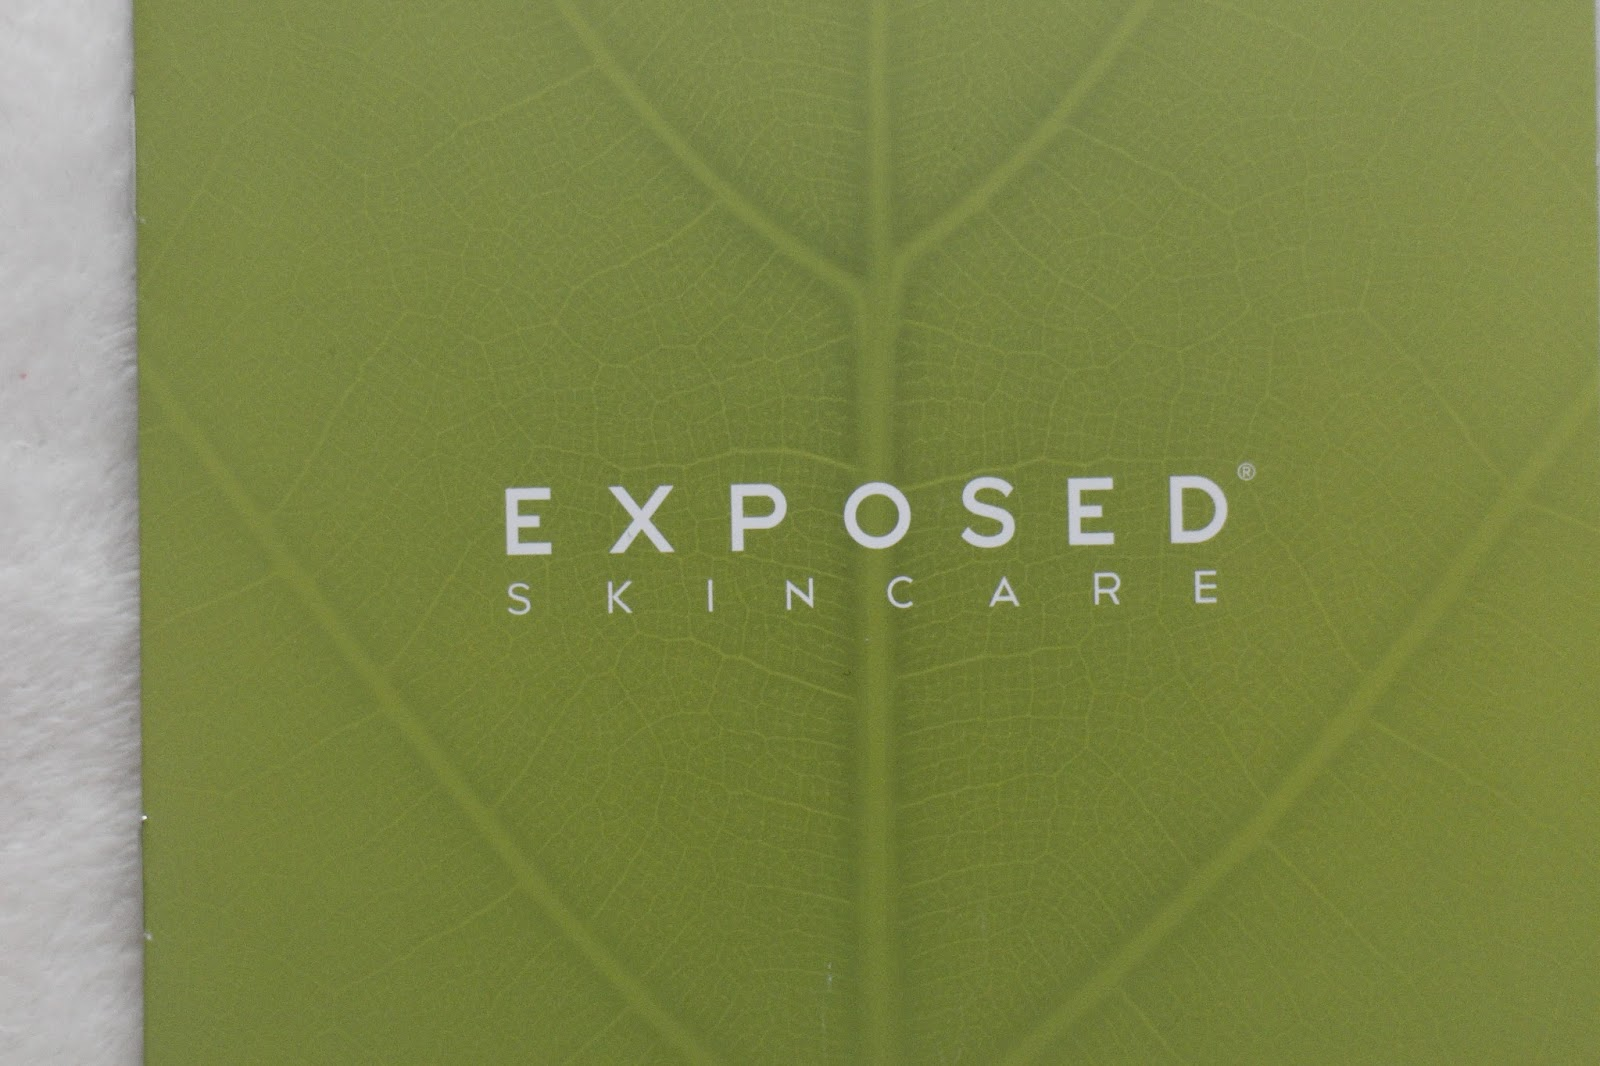 Exposed Skincare Kit Review